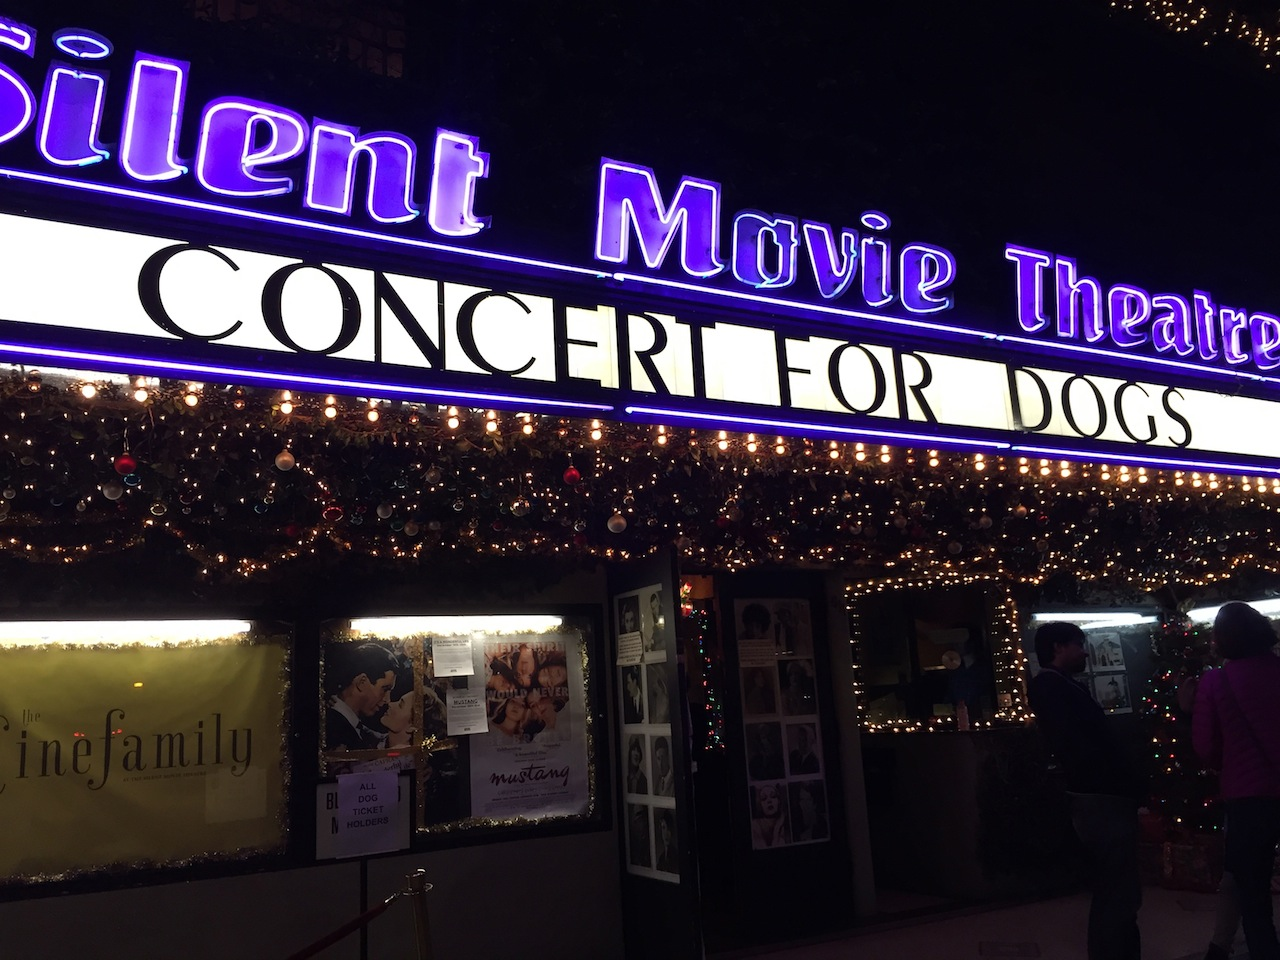 Concert for Dogs at the Cinefamily, December 20, 2015 (all photos by the author for Hyperallergic)